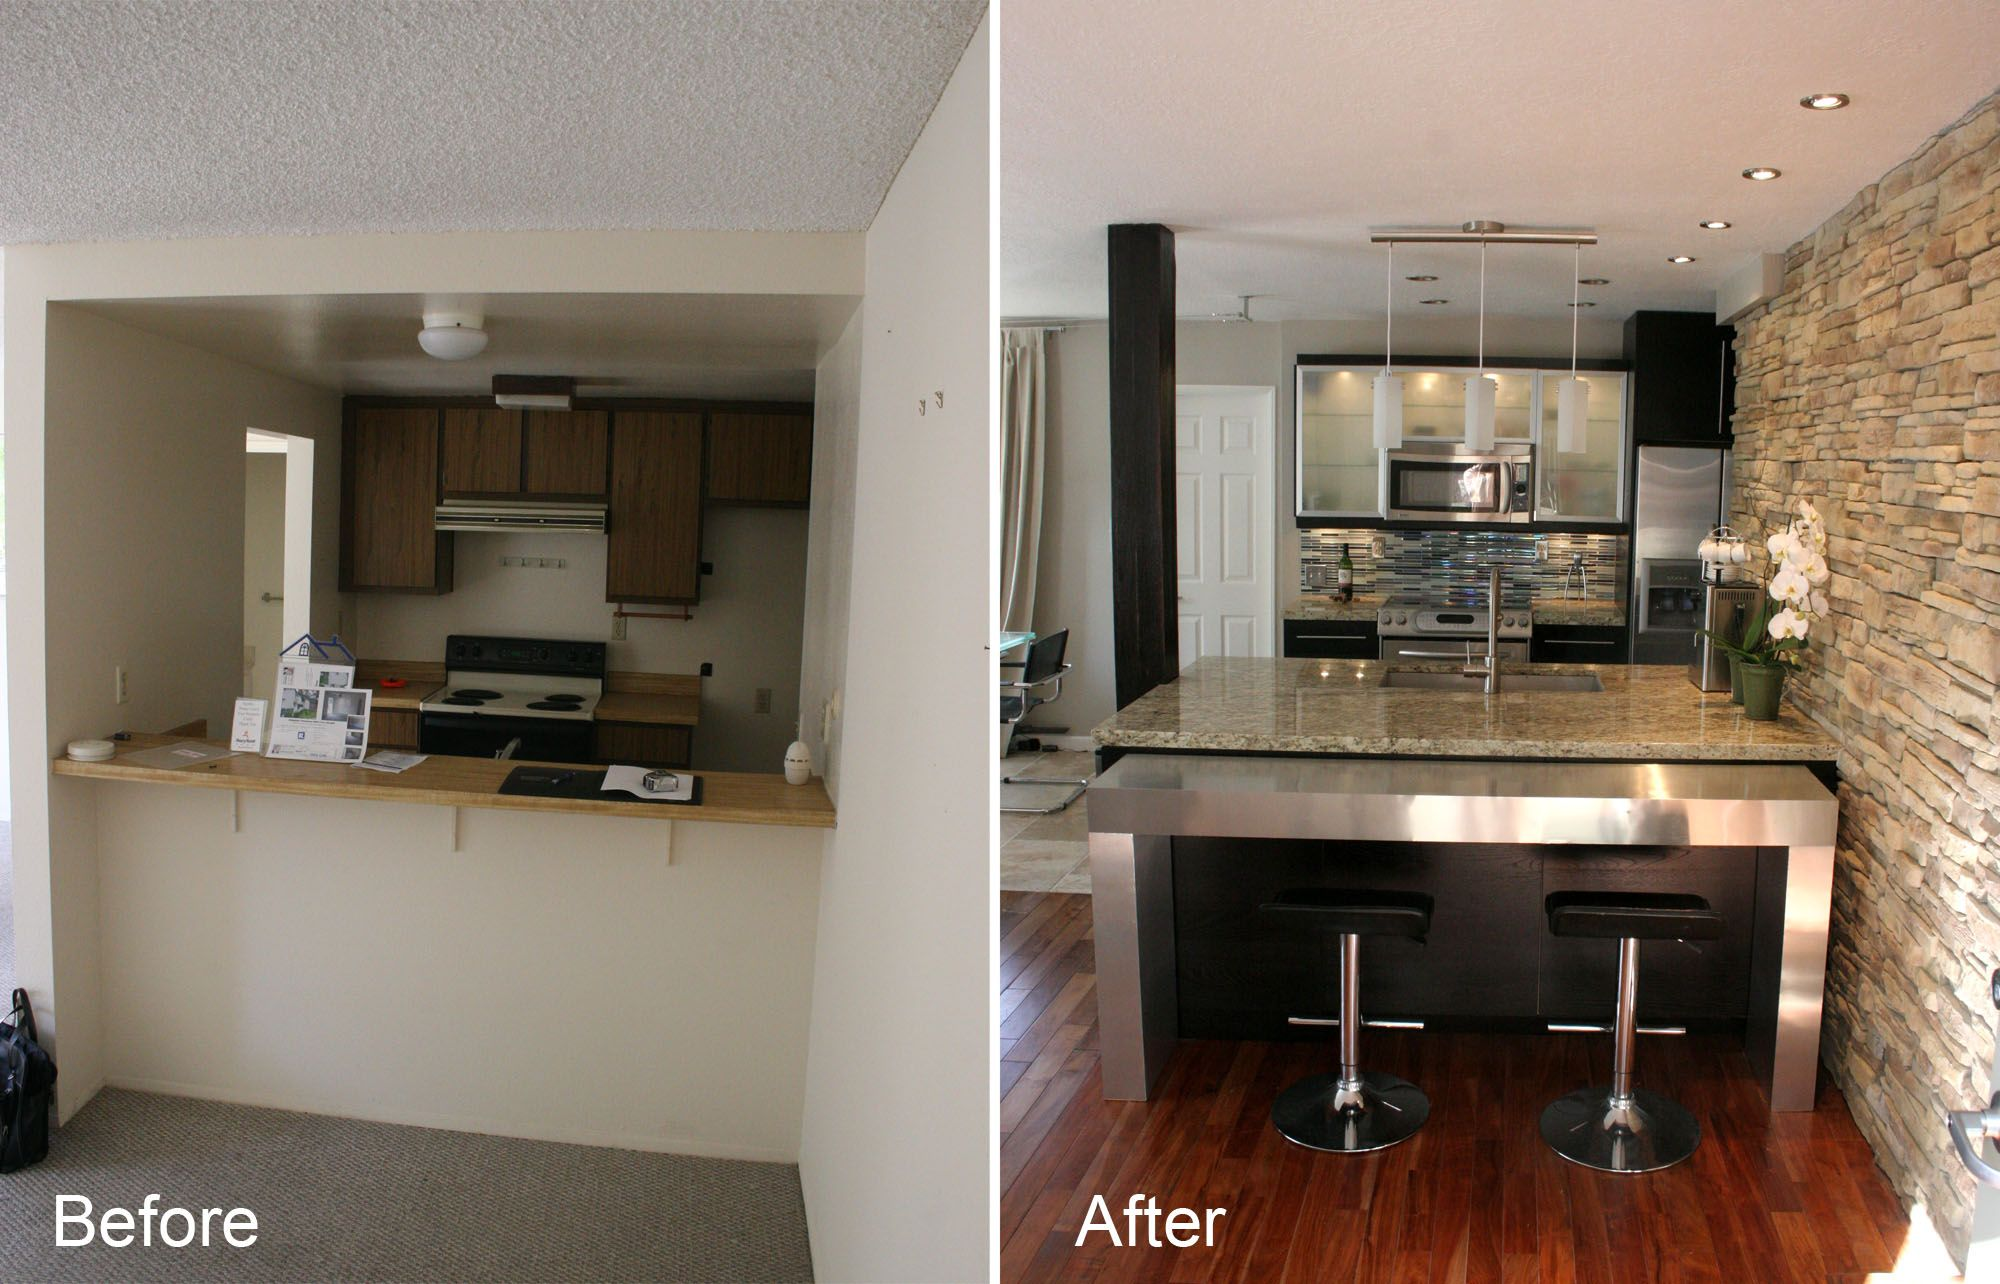 good Condo Kitchen Remodel Before And After #1: 78 Best images about REMODEL BEFORE N AFTER on Pinterest | Countertops,  Small kitchens and Cabinets